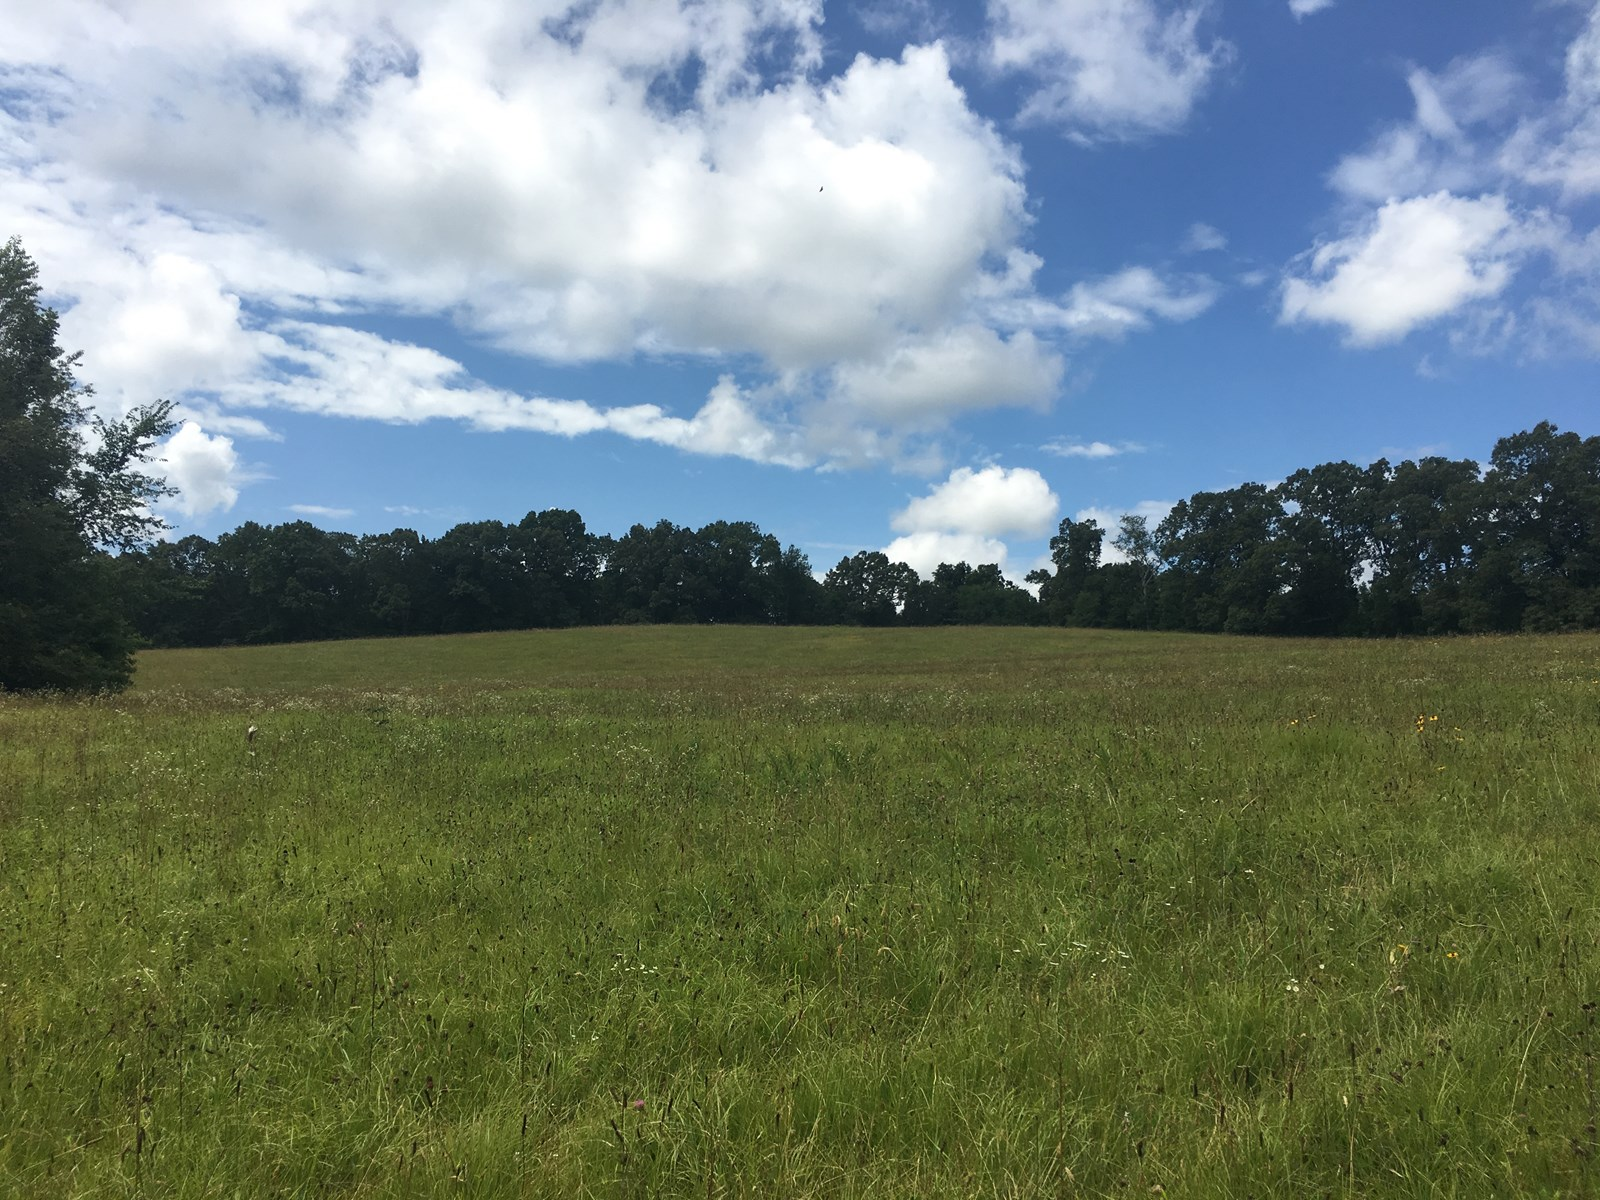 NEARLY 30 ACRES FOR SALE IN TENNESSEE!